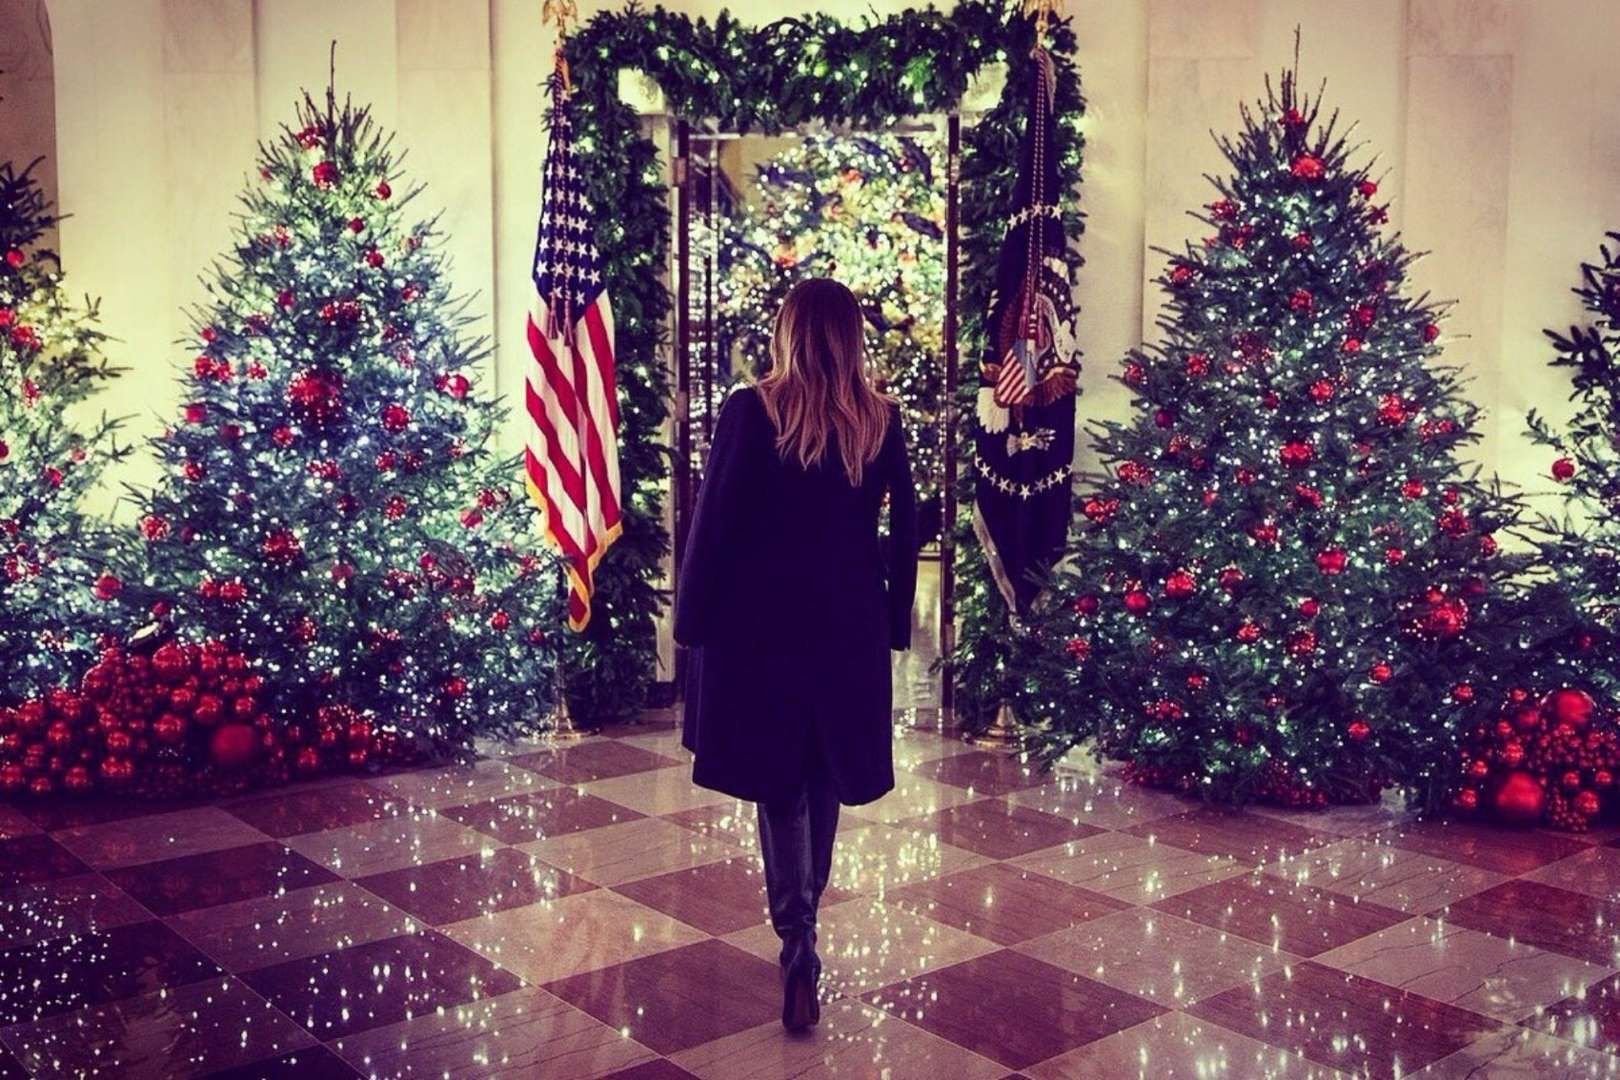 Whitehouse Christmas.25 Photos Show The White House All Decked Out For Christmas